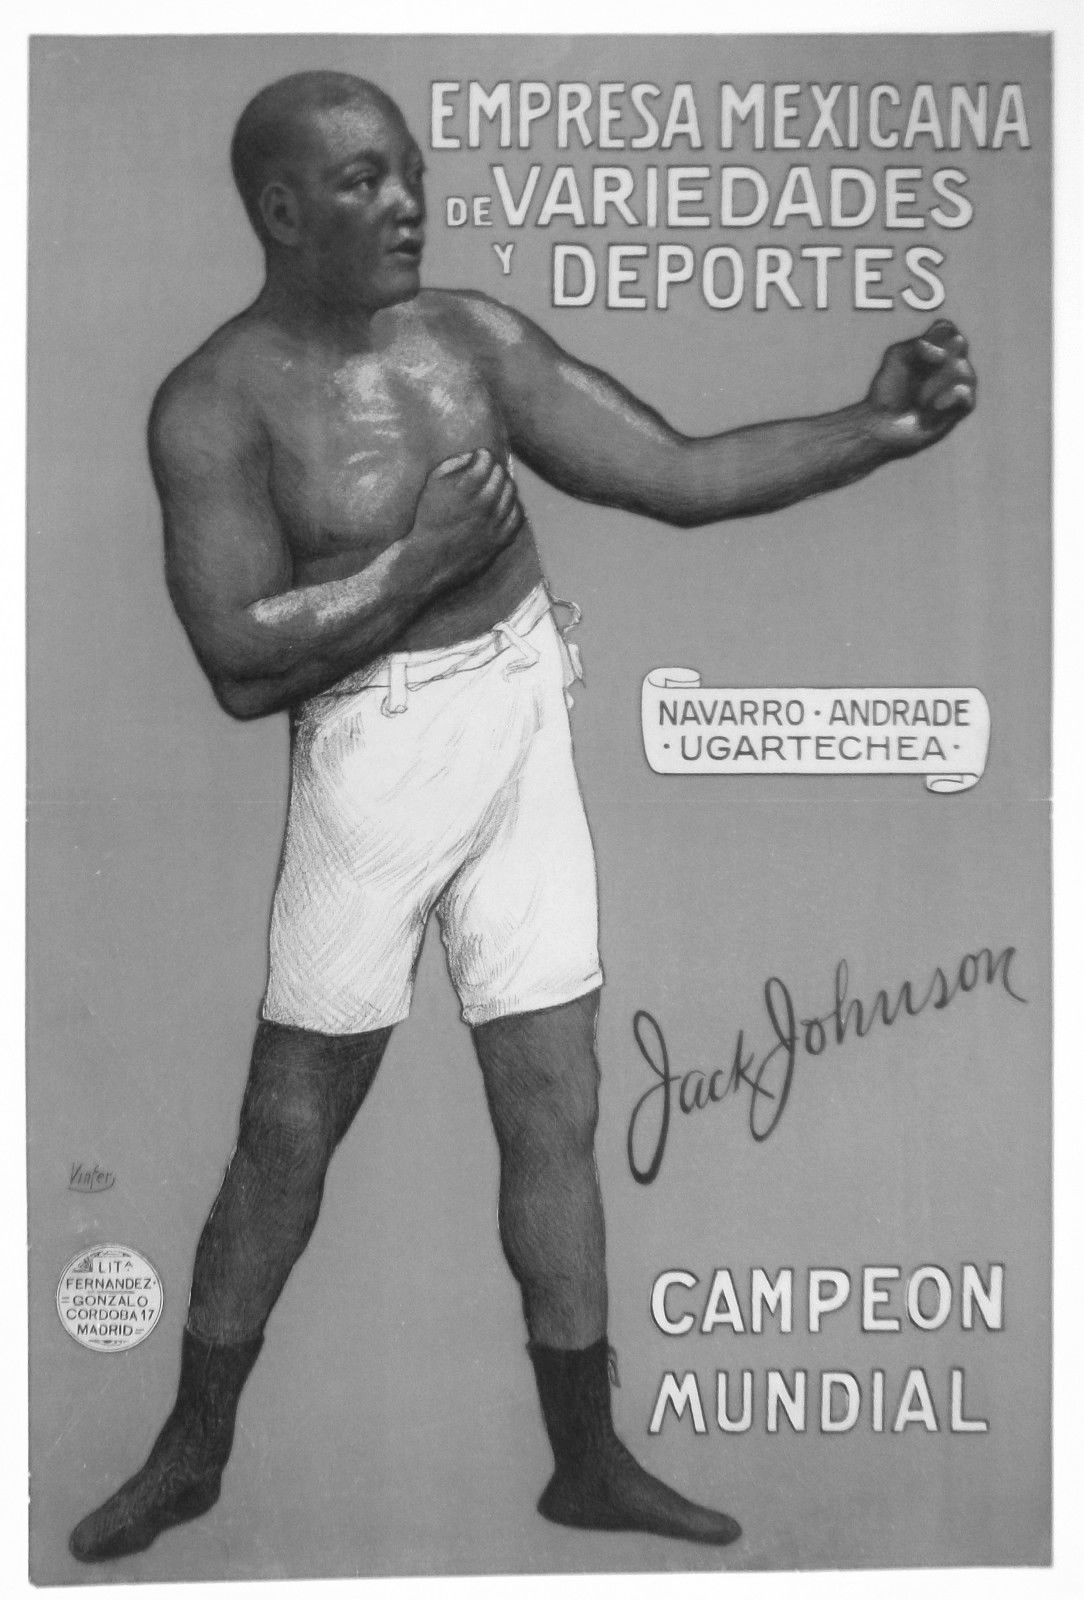 Viva Johnson: Jack Johnson in Revolutionary Mexico